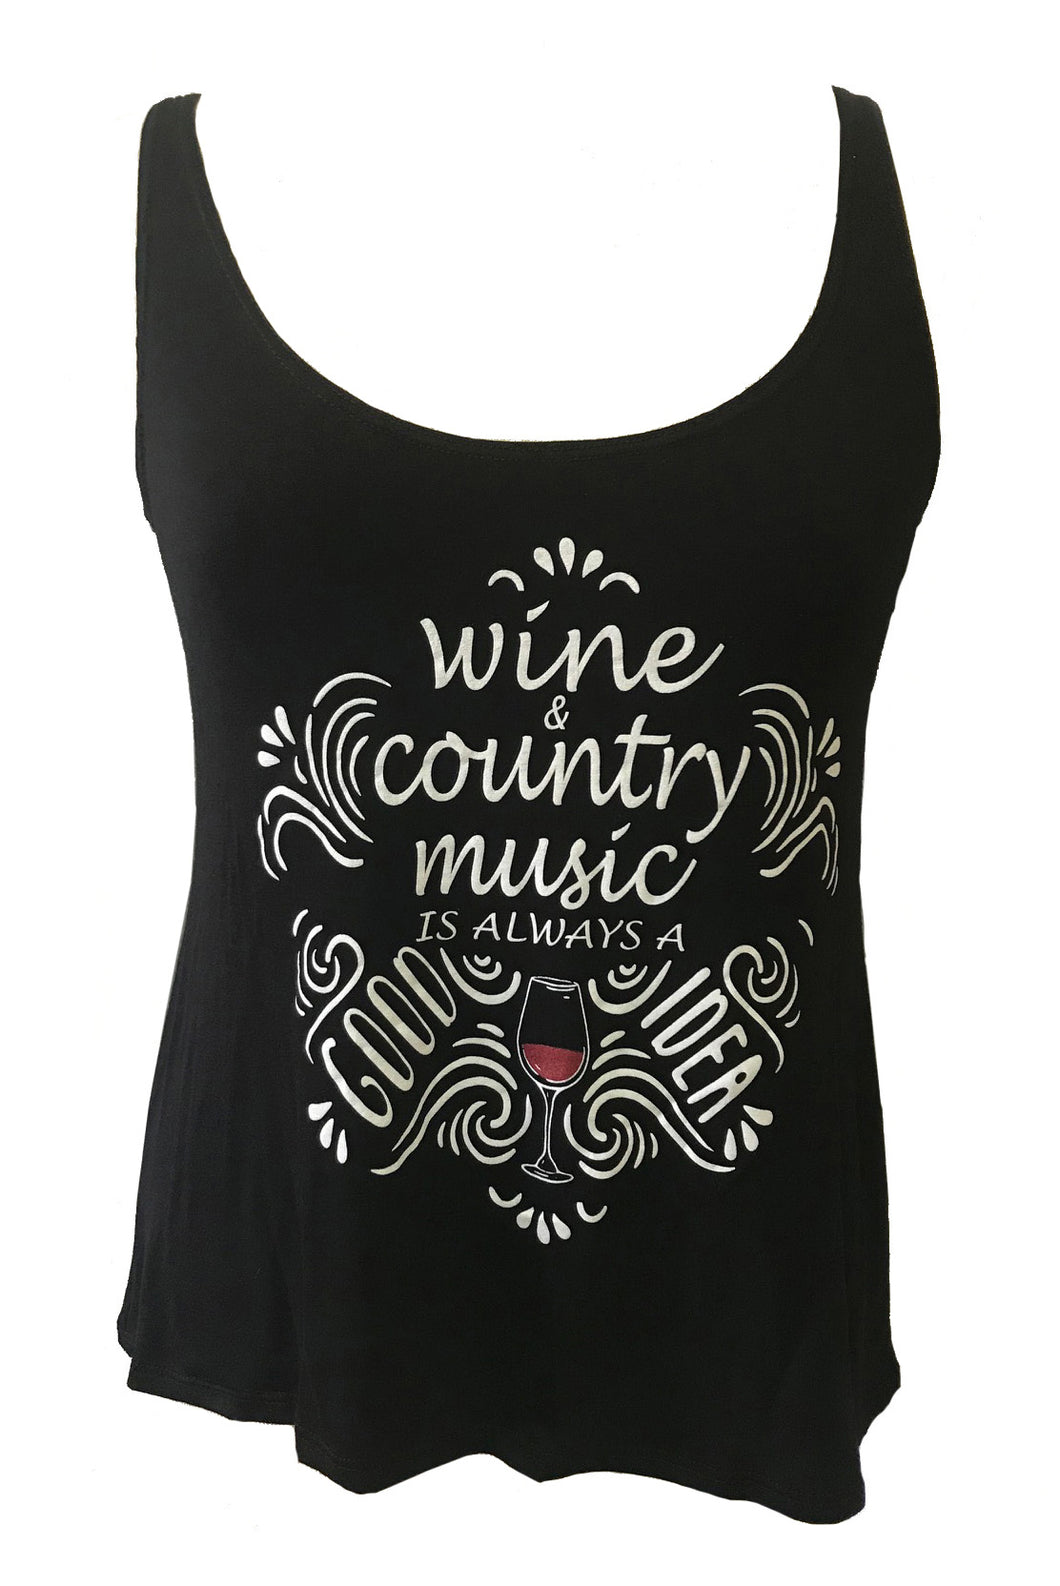 WINE AND COUNTRY MUSIC ALWAY A GOOD IDEA